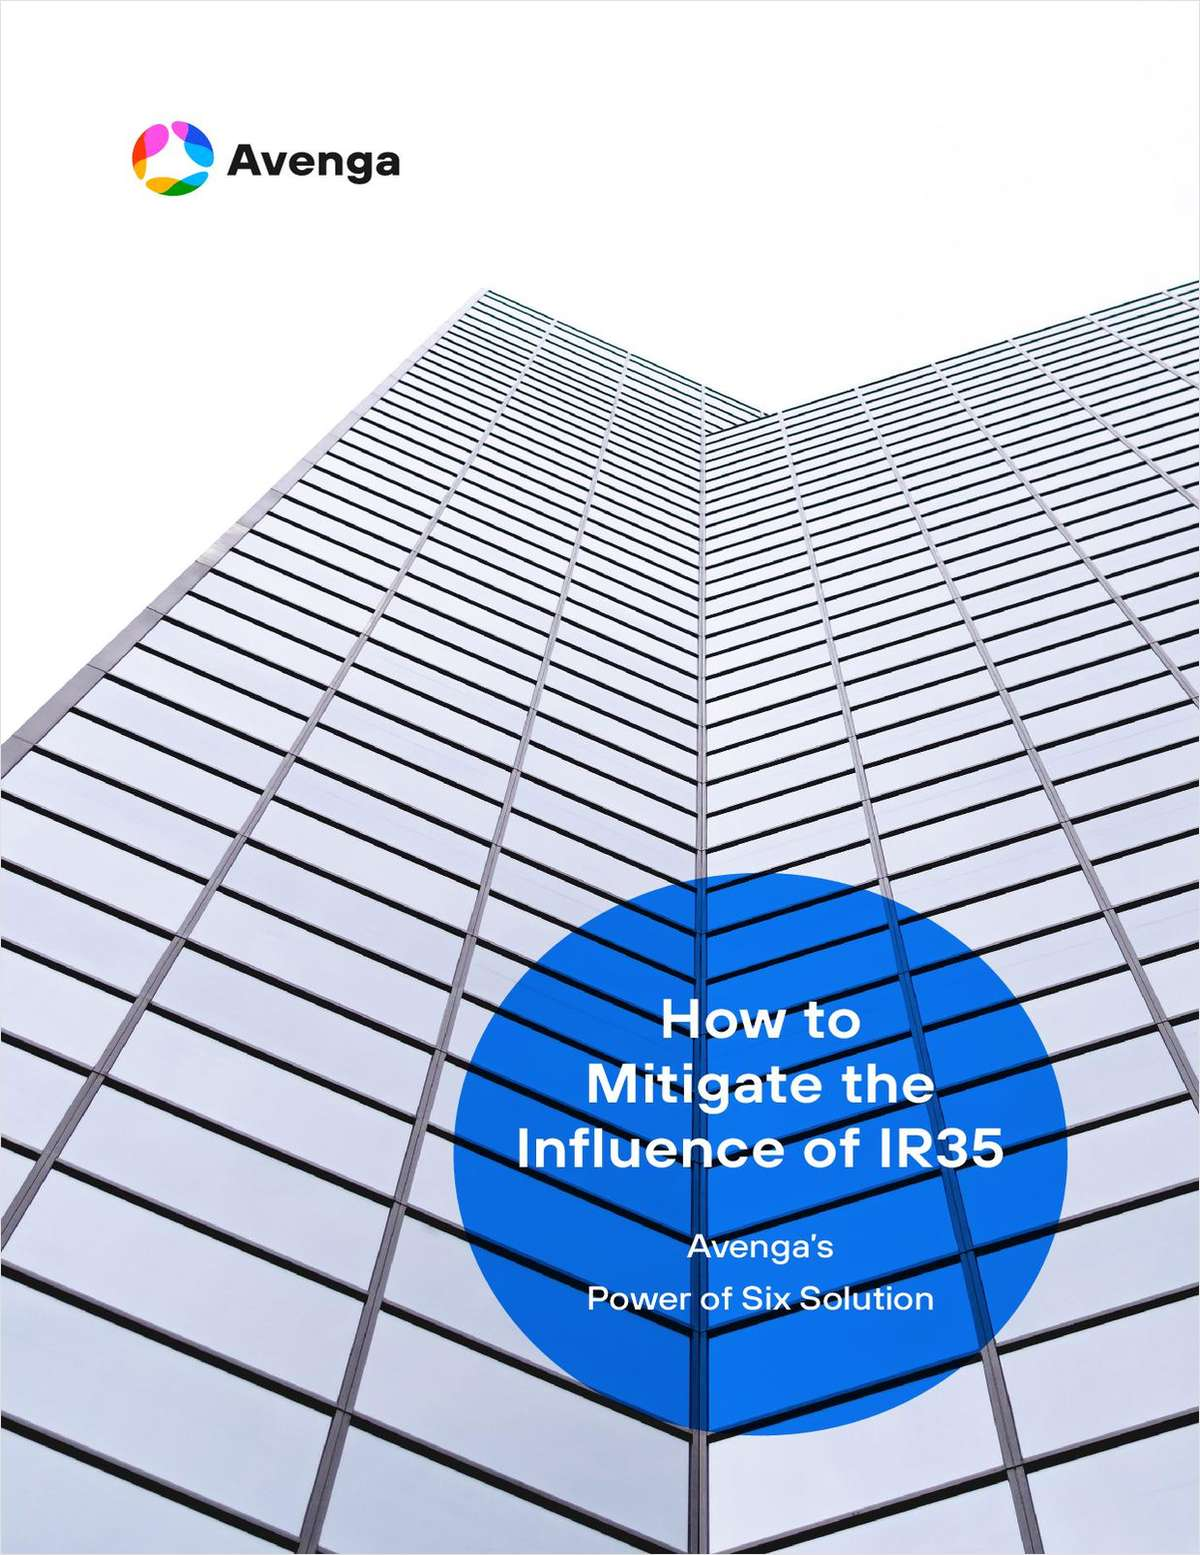 How to Mitigate the Influence of IR35: Avenga's 'Power of Six' Solution